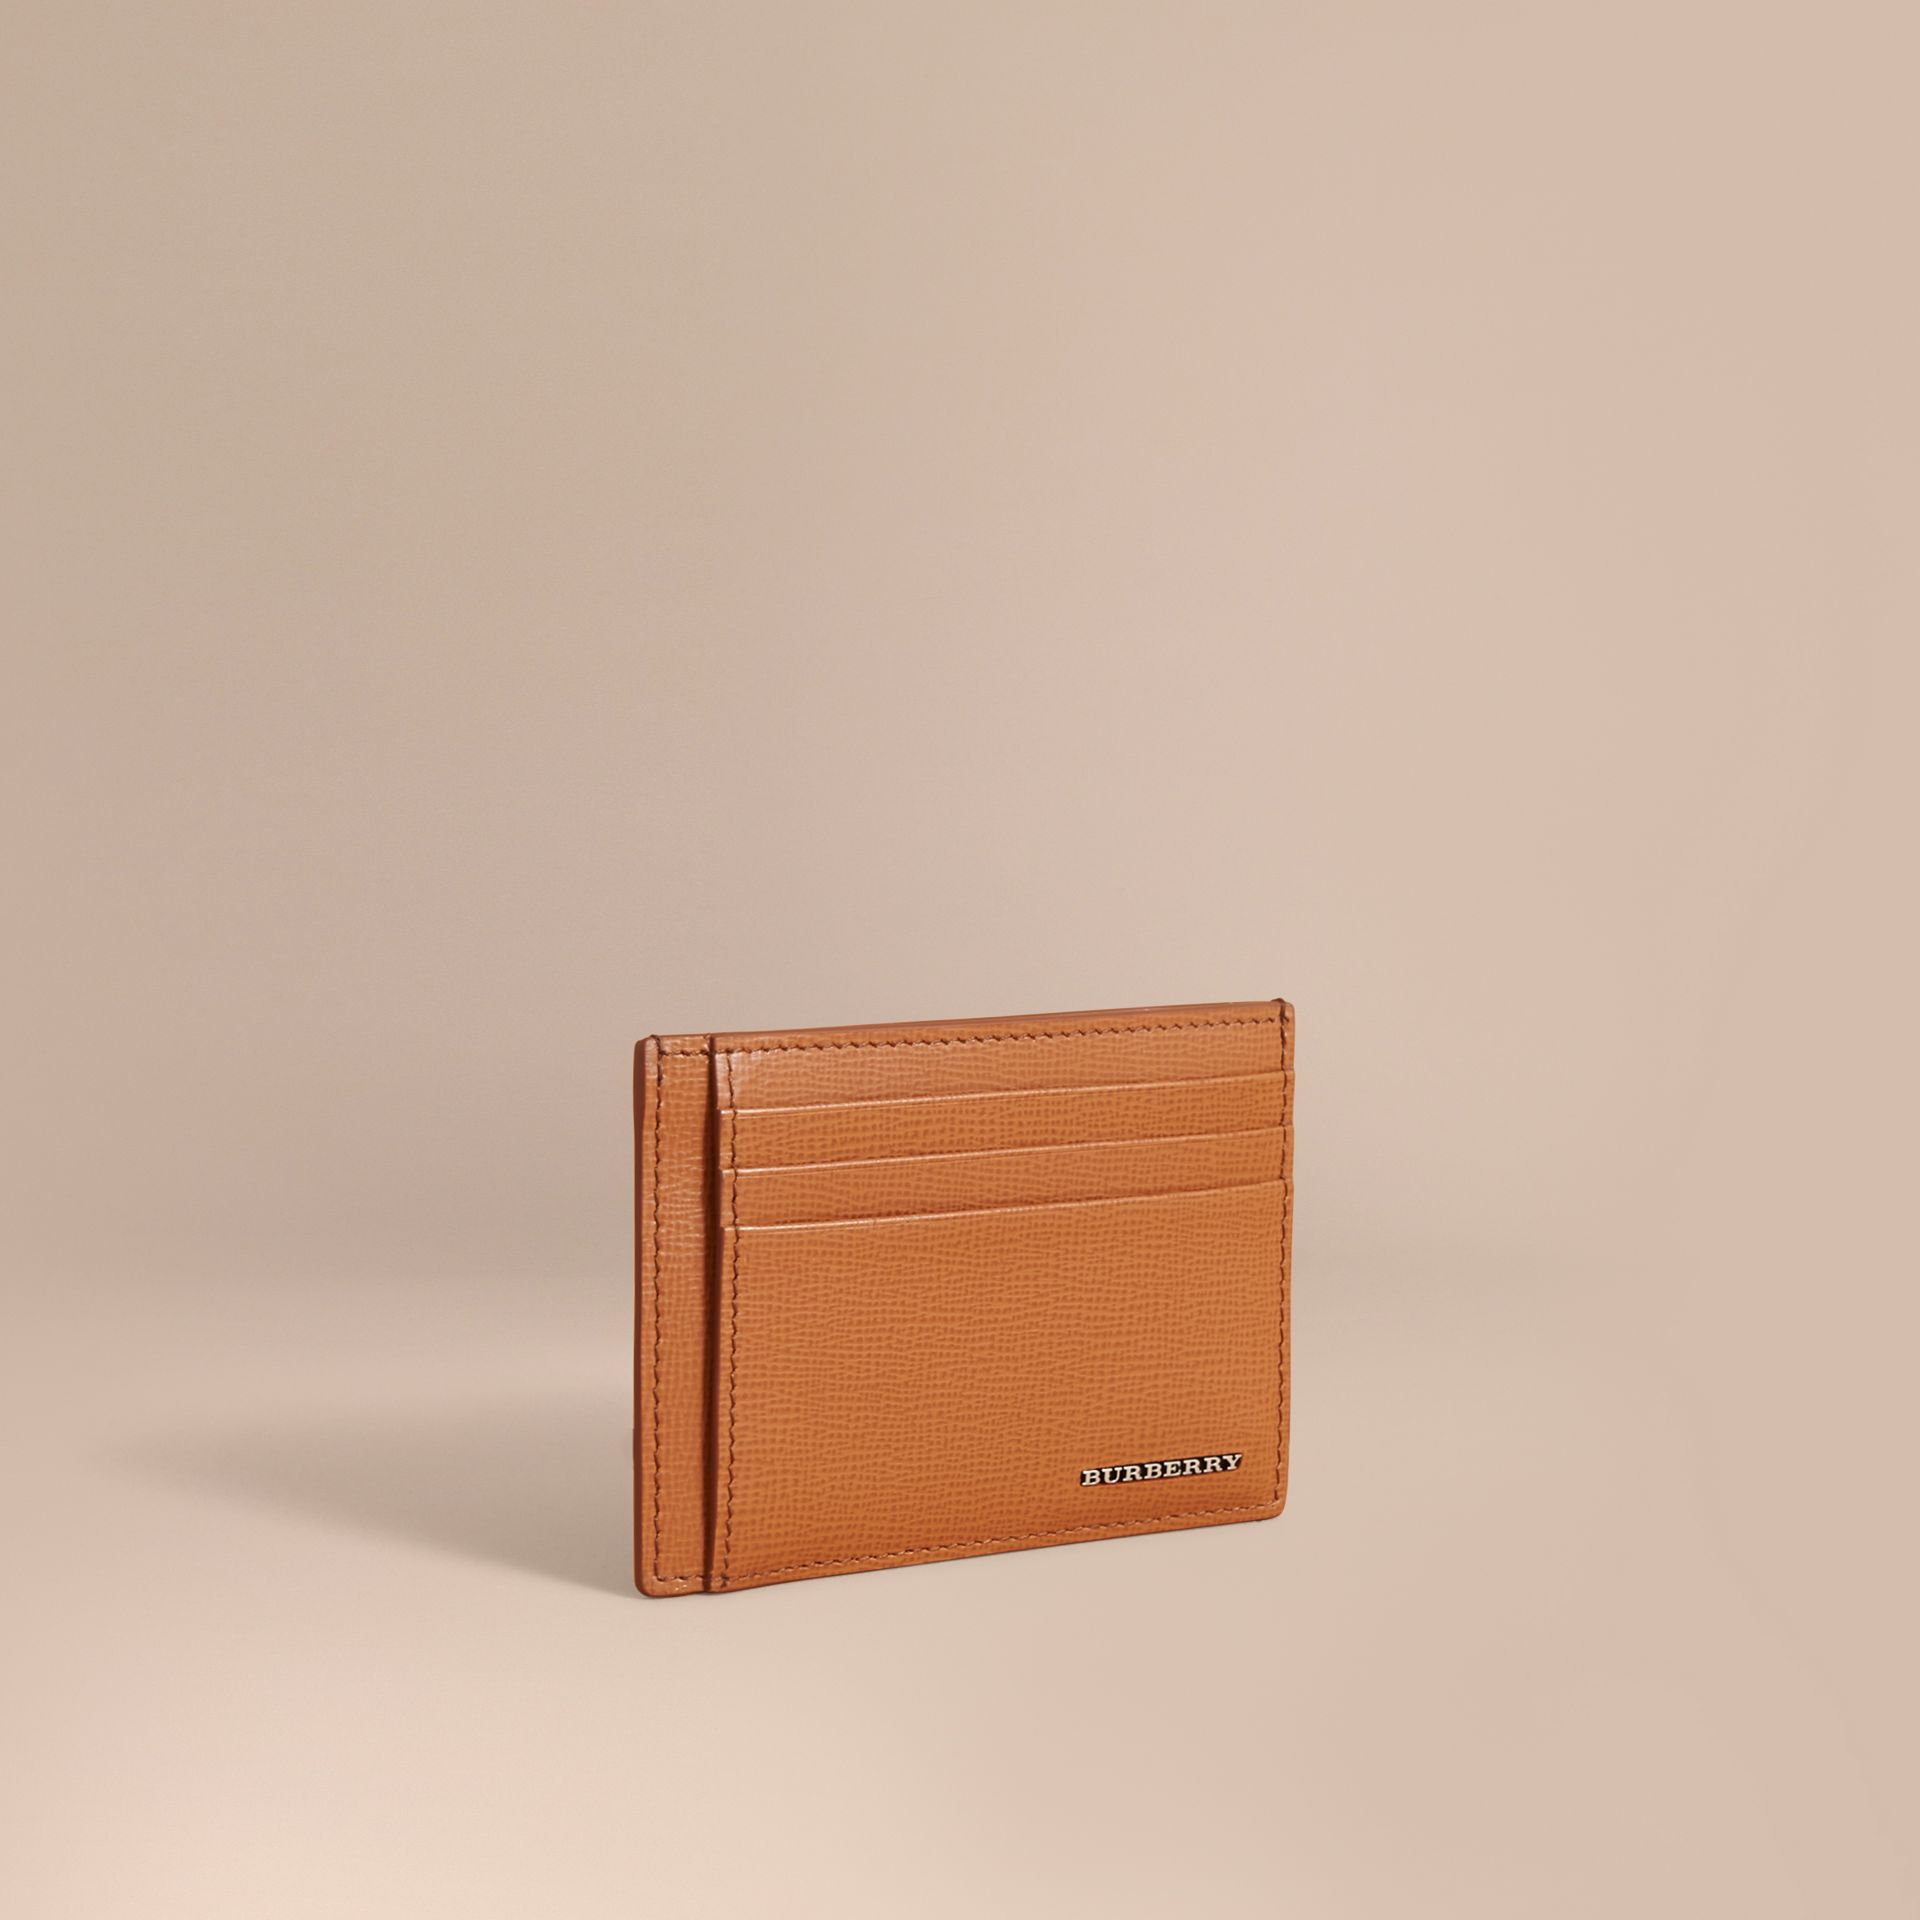 London Leather Money Clip Card Case in Tan - Men | Burberry Hong Kong - gallery image 1